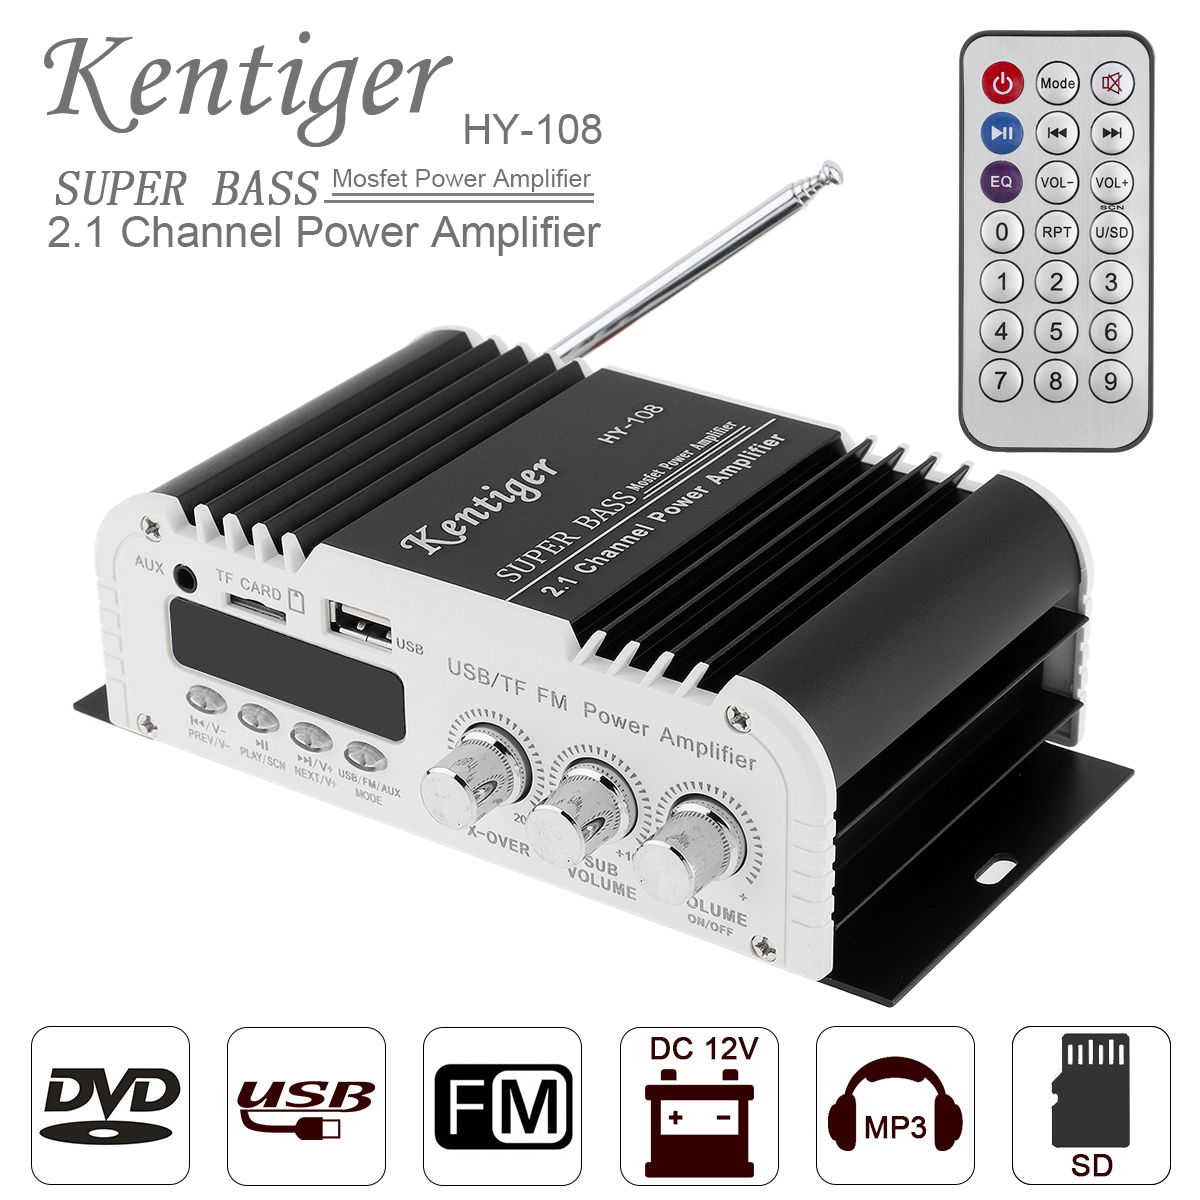 HiFi Stereo USB Digital 2 Ch Output Power Amplifier Audio Speaker AMP for Car or Home Audio System with IR Remote Control and FM Antenna.